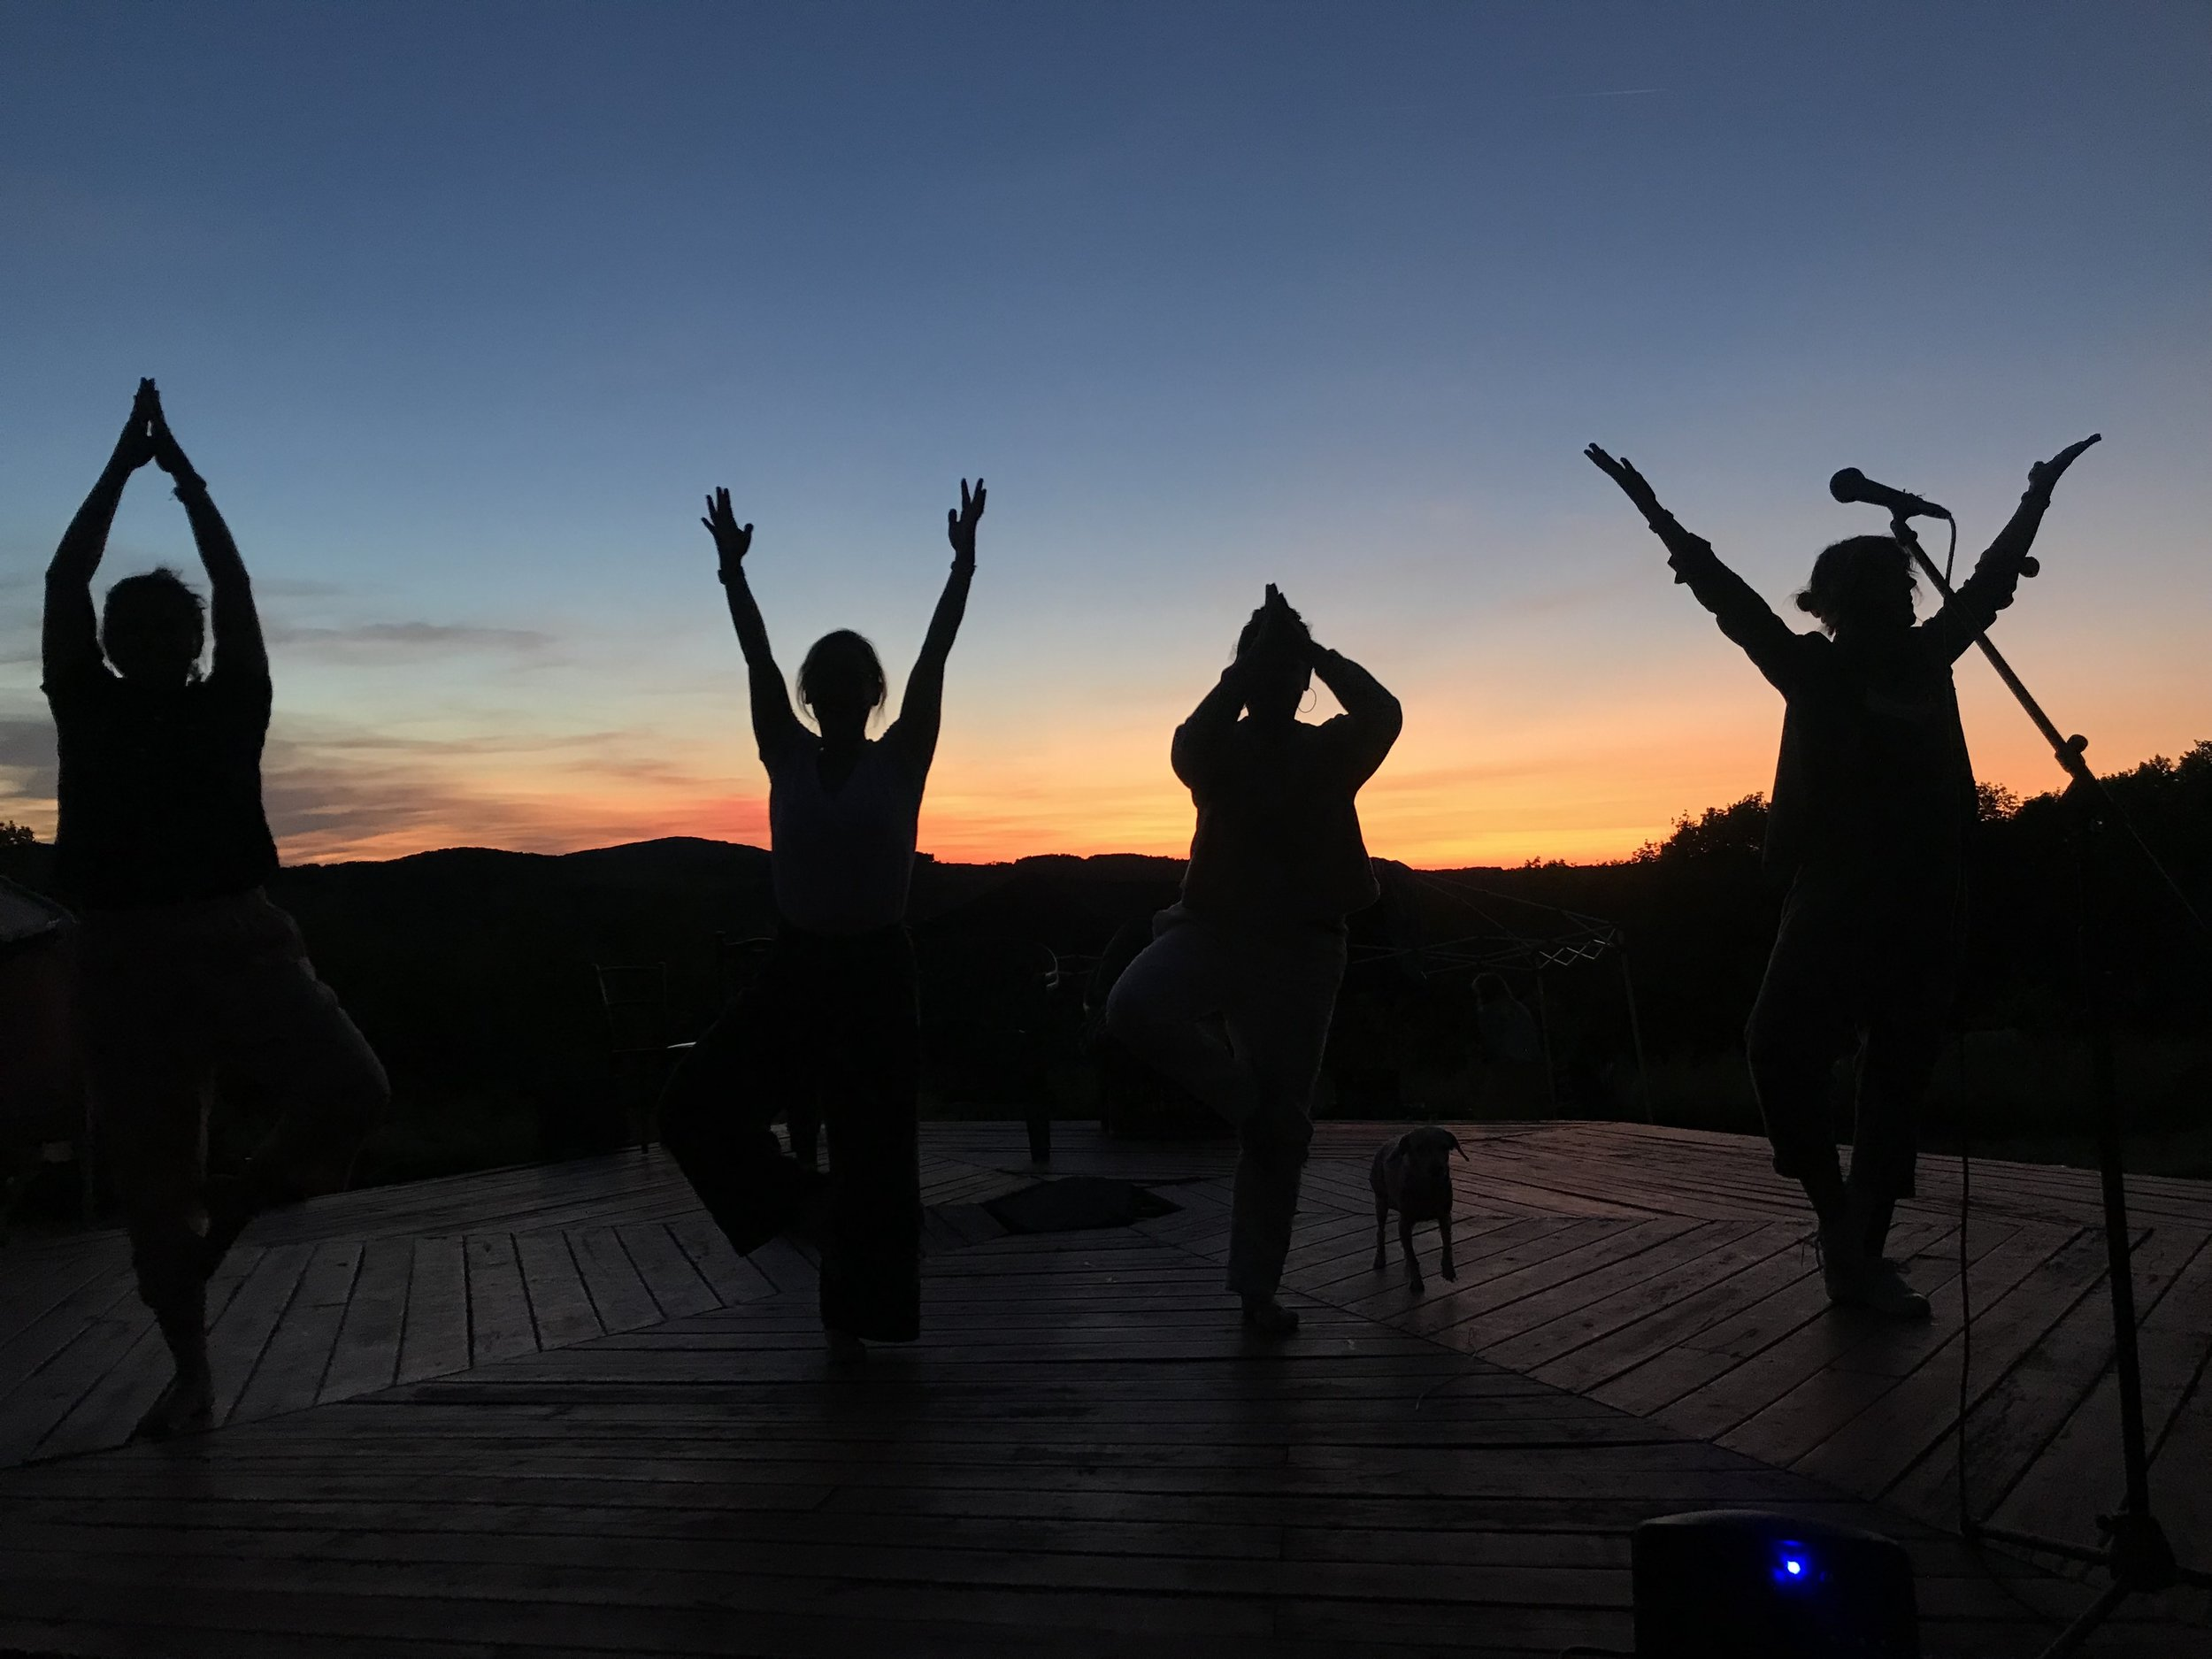 Yogis do sunset in the Catskills - stunning!